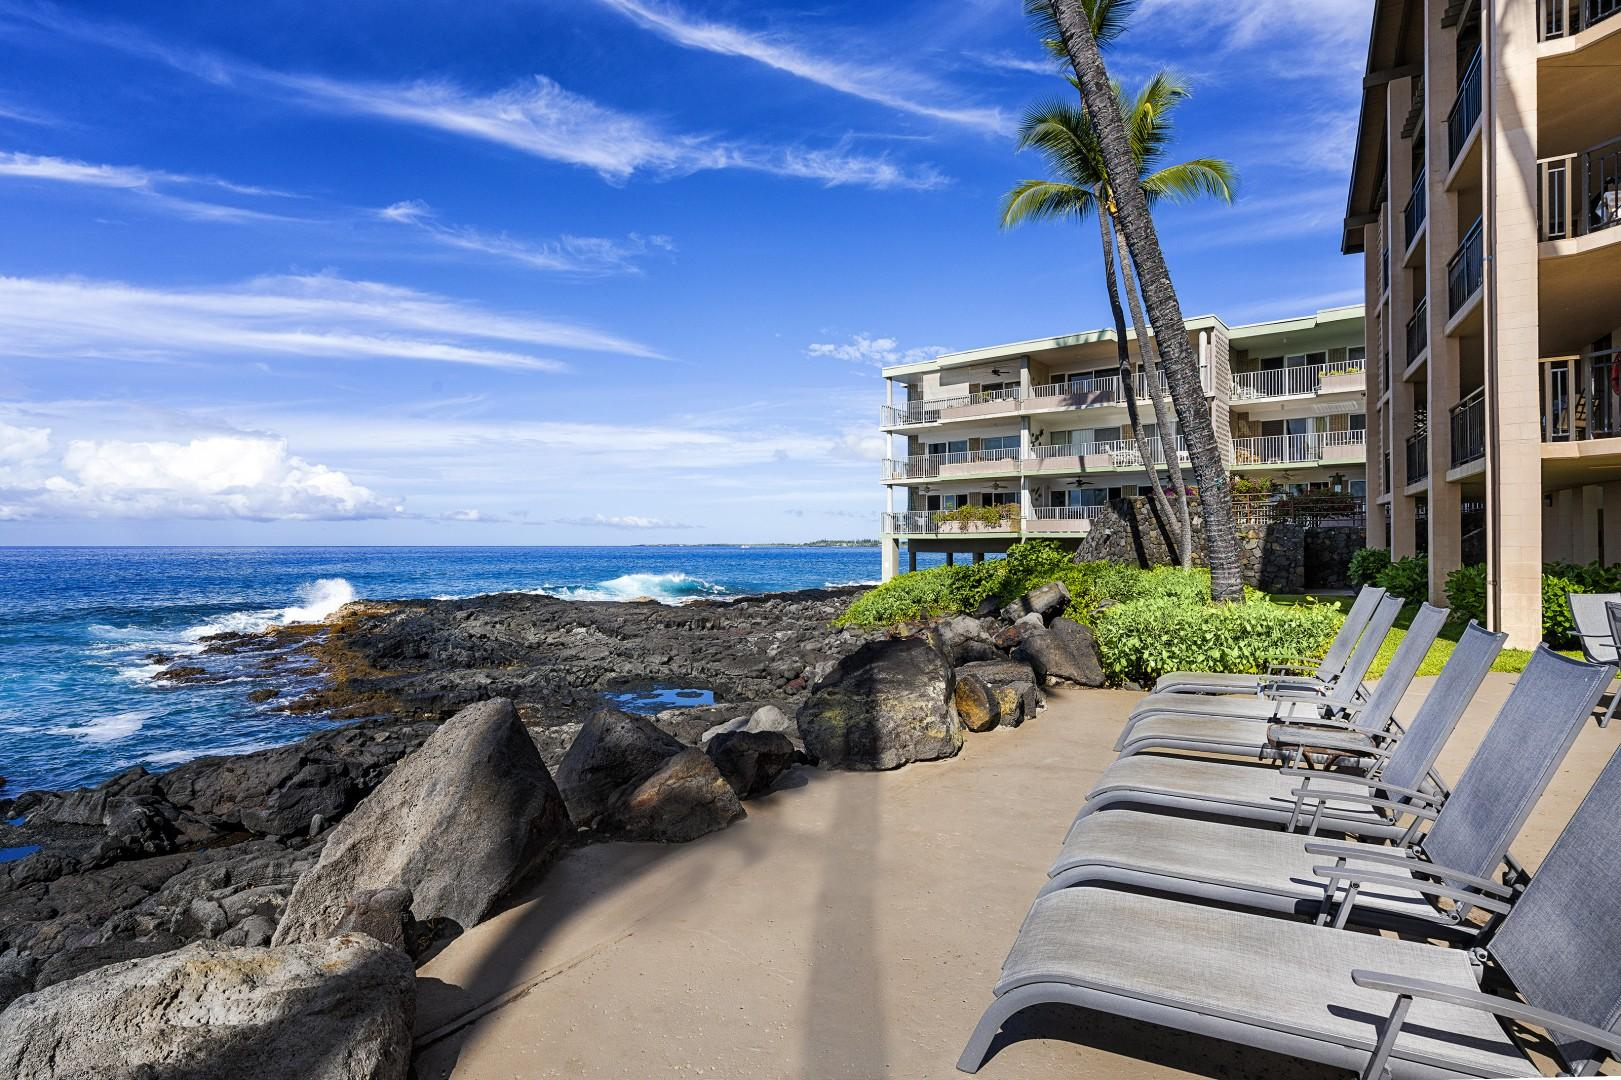 Lounge by ocean at the Kona Makai complex!